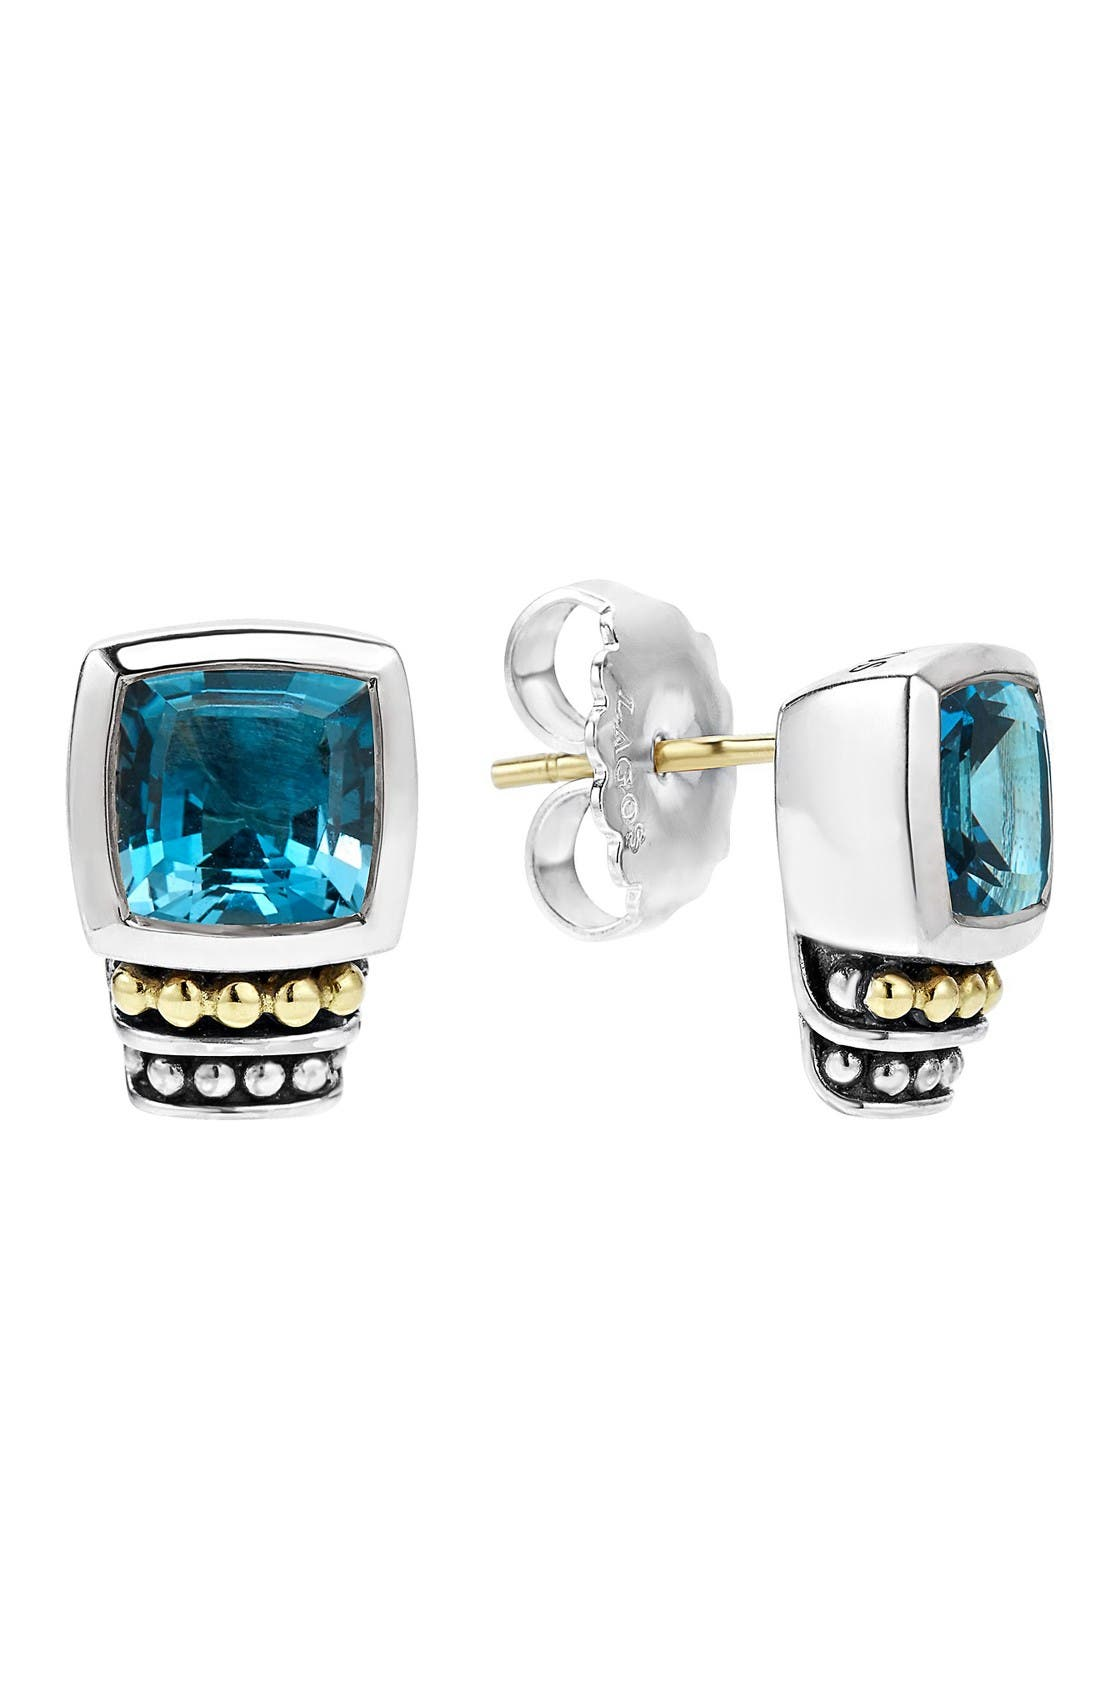 LAGOS 'Caviar Color' Semiprecious Stone Stud Earrings